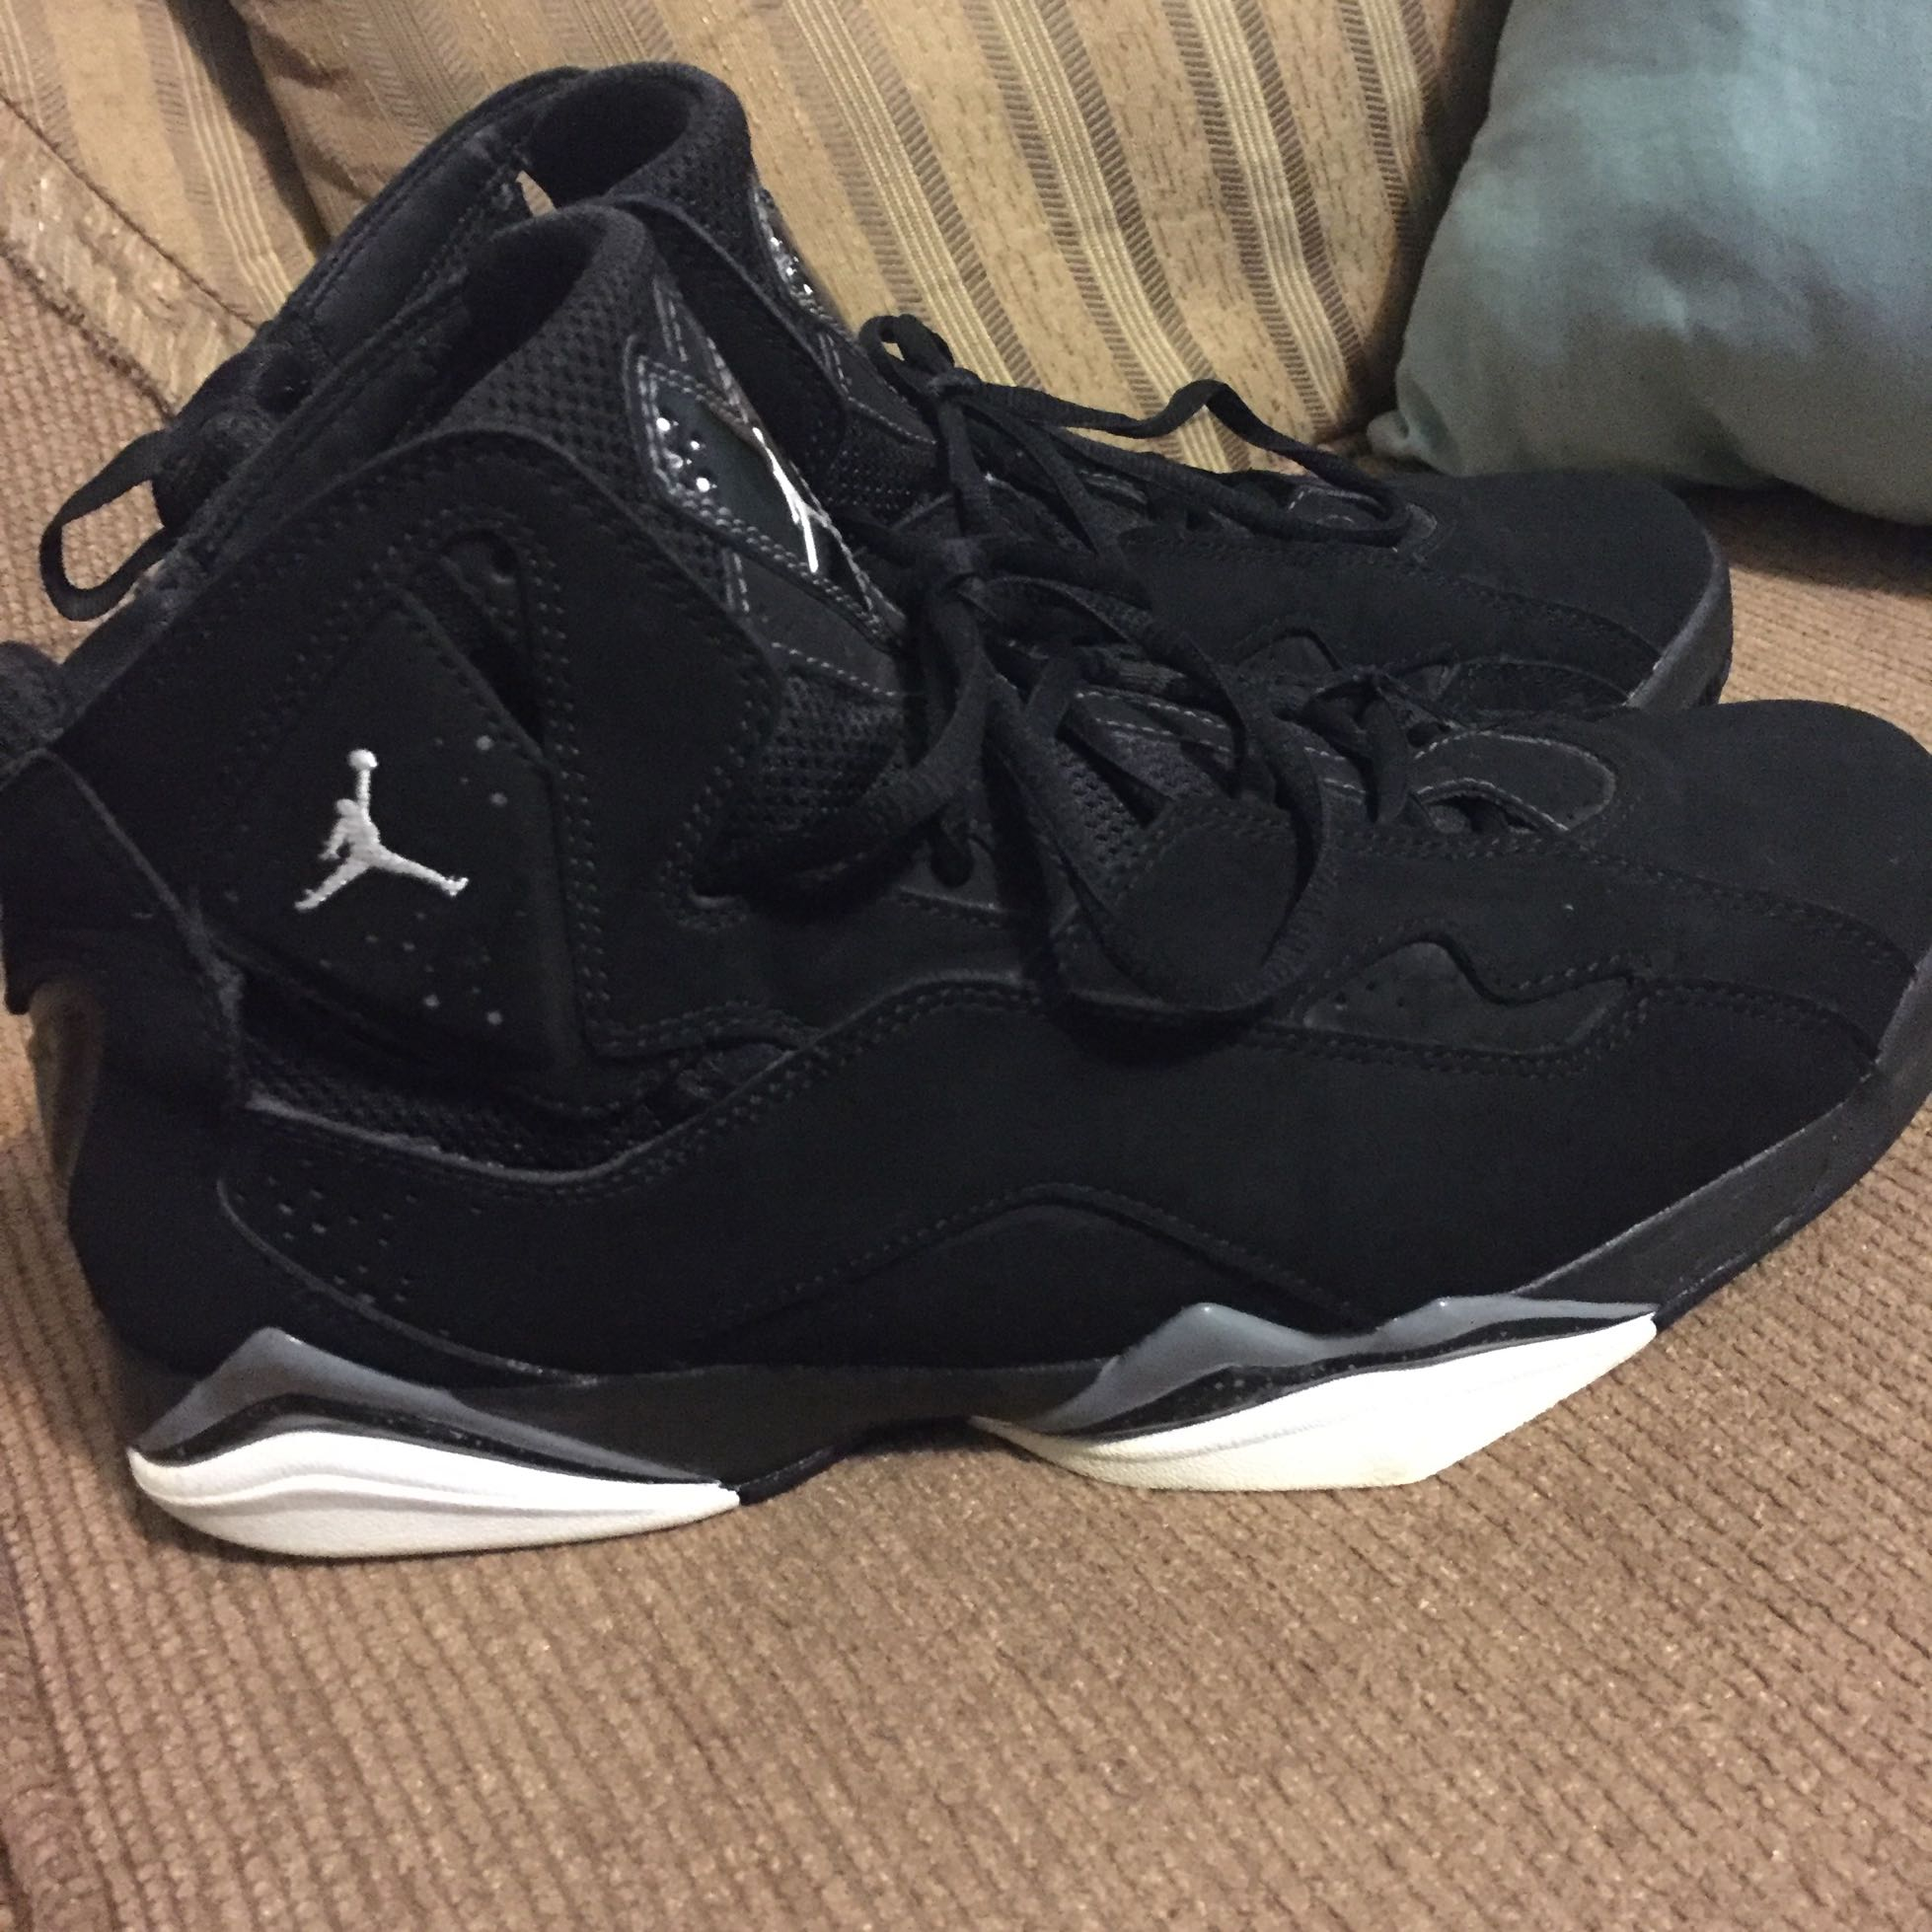 888b3a6208d Jordan Oreos 6 Size 7 For Sale Size 7 Dress